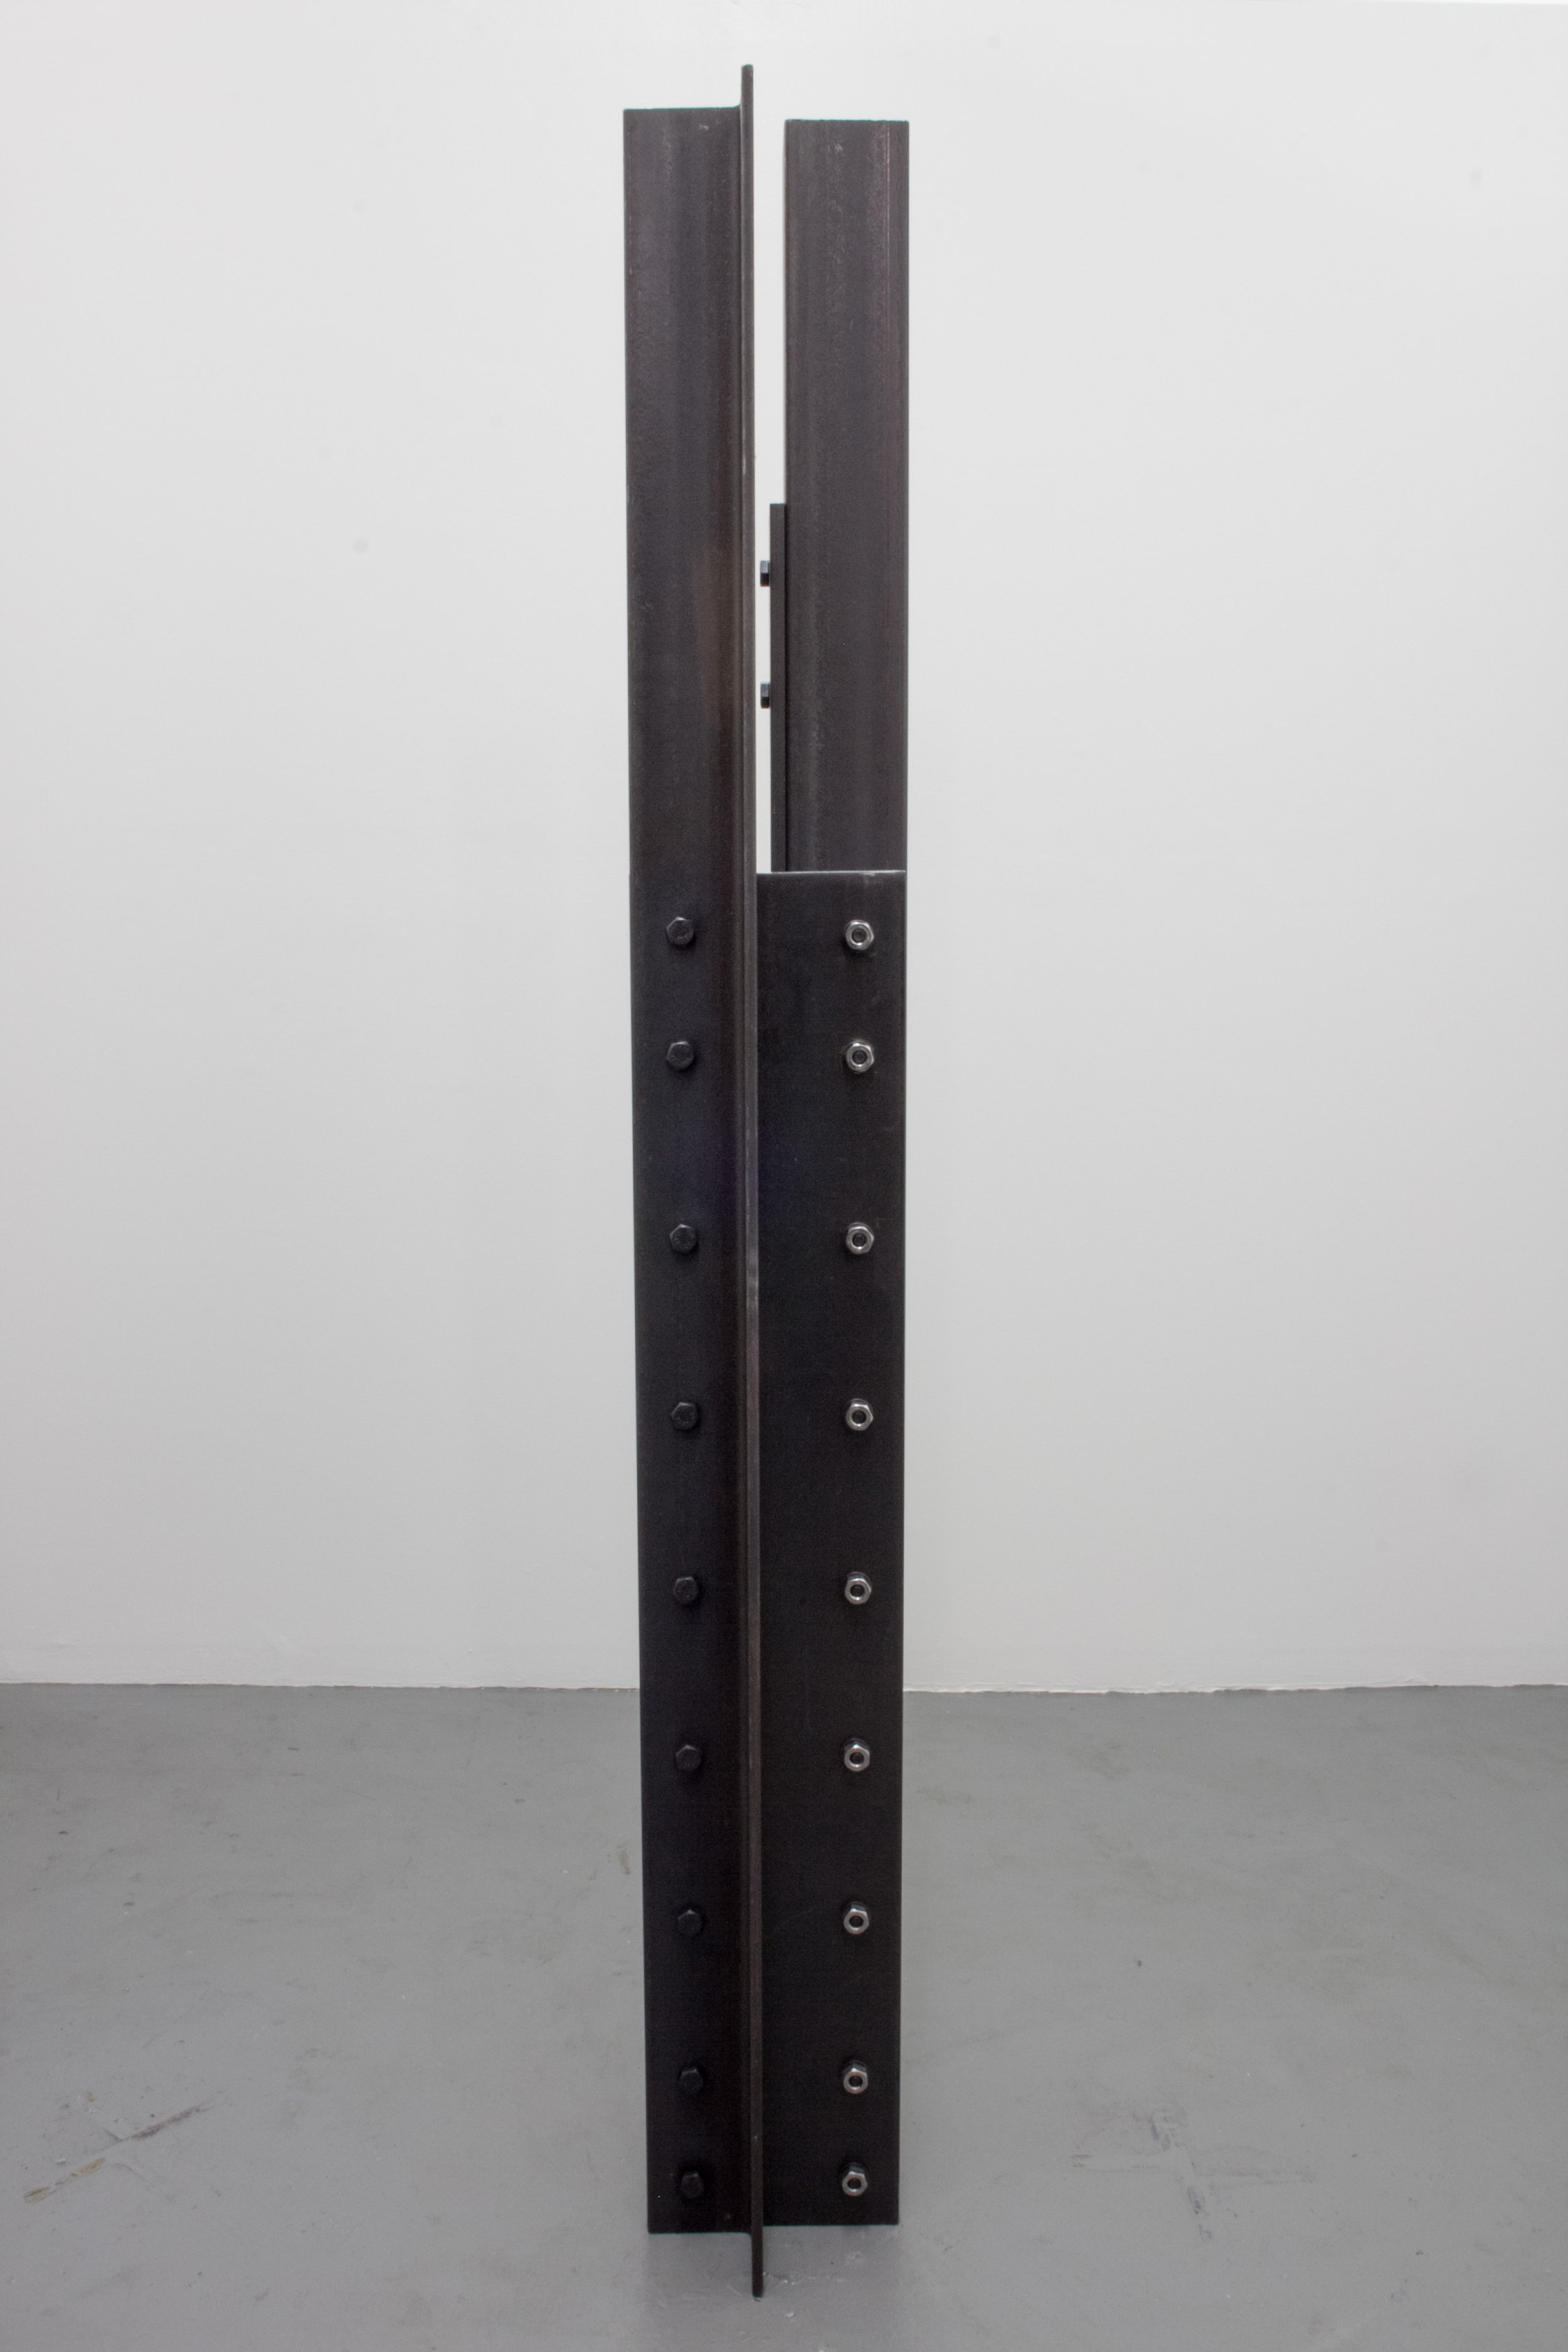 No One To Talk About Failure With , 2015 Steel, hardware 72 x 12 x 12 inches